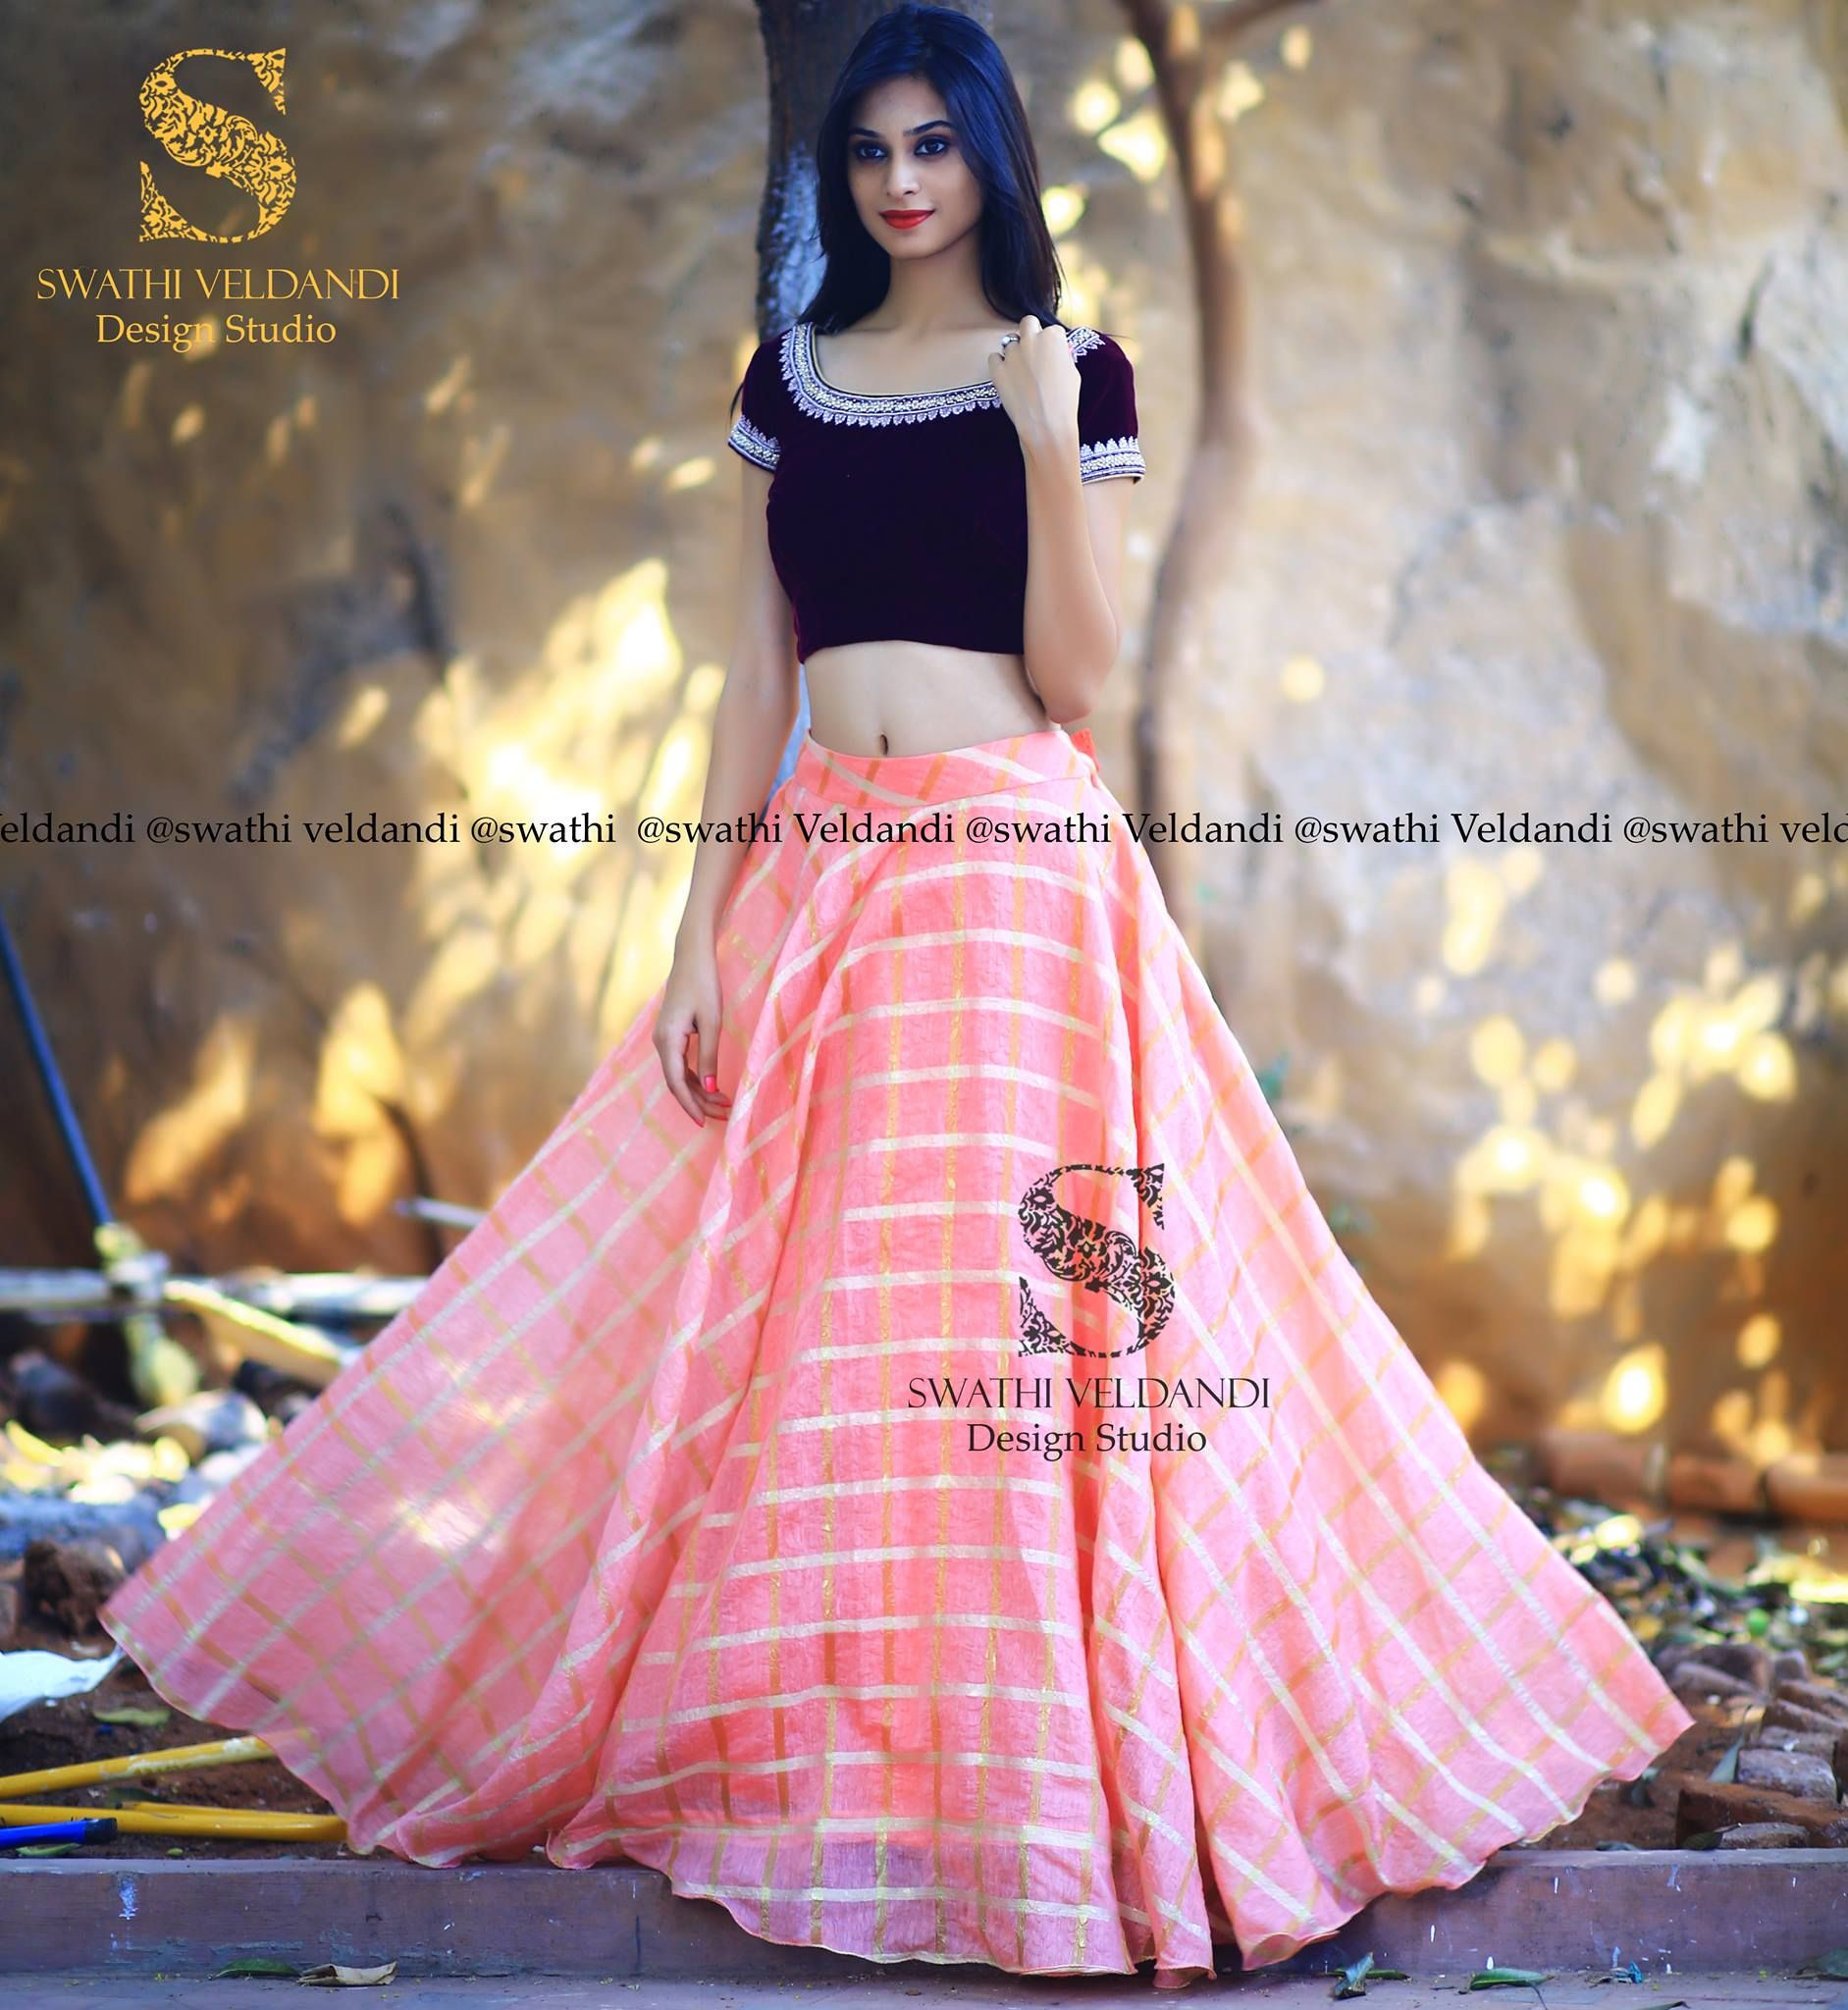 With just the right blend of Purple peech this SV swathi_veldandi ...